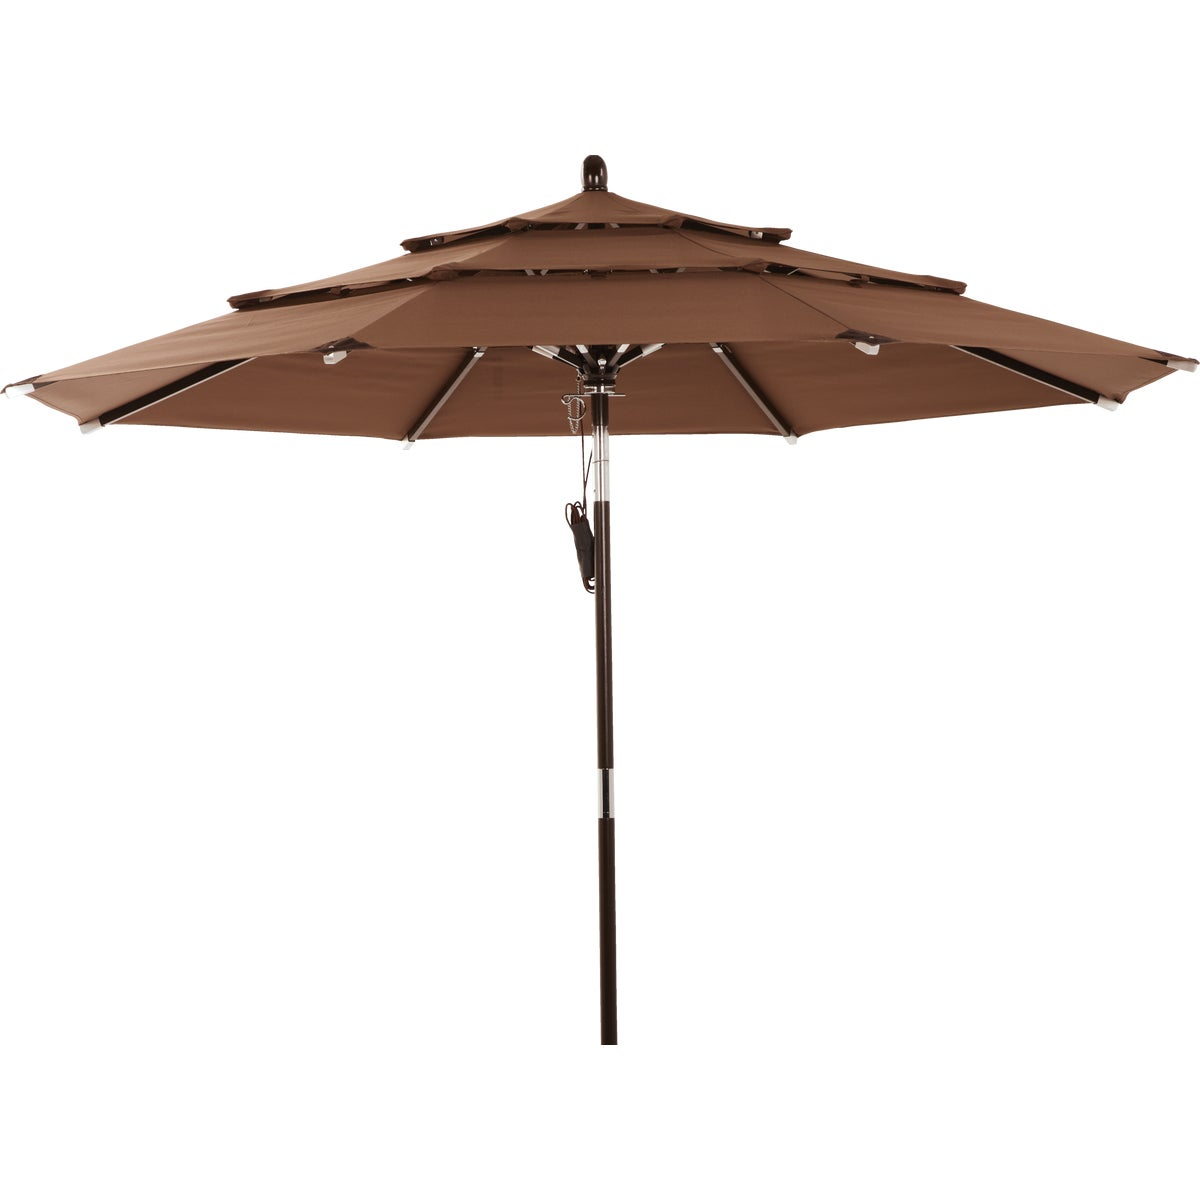 THREE-TIER UMBRELLA BRN